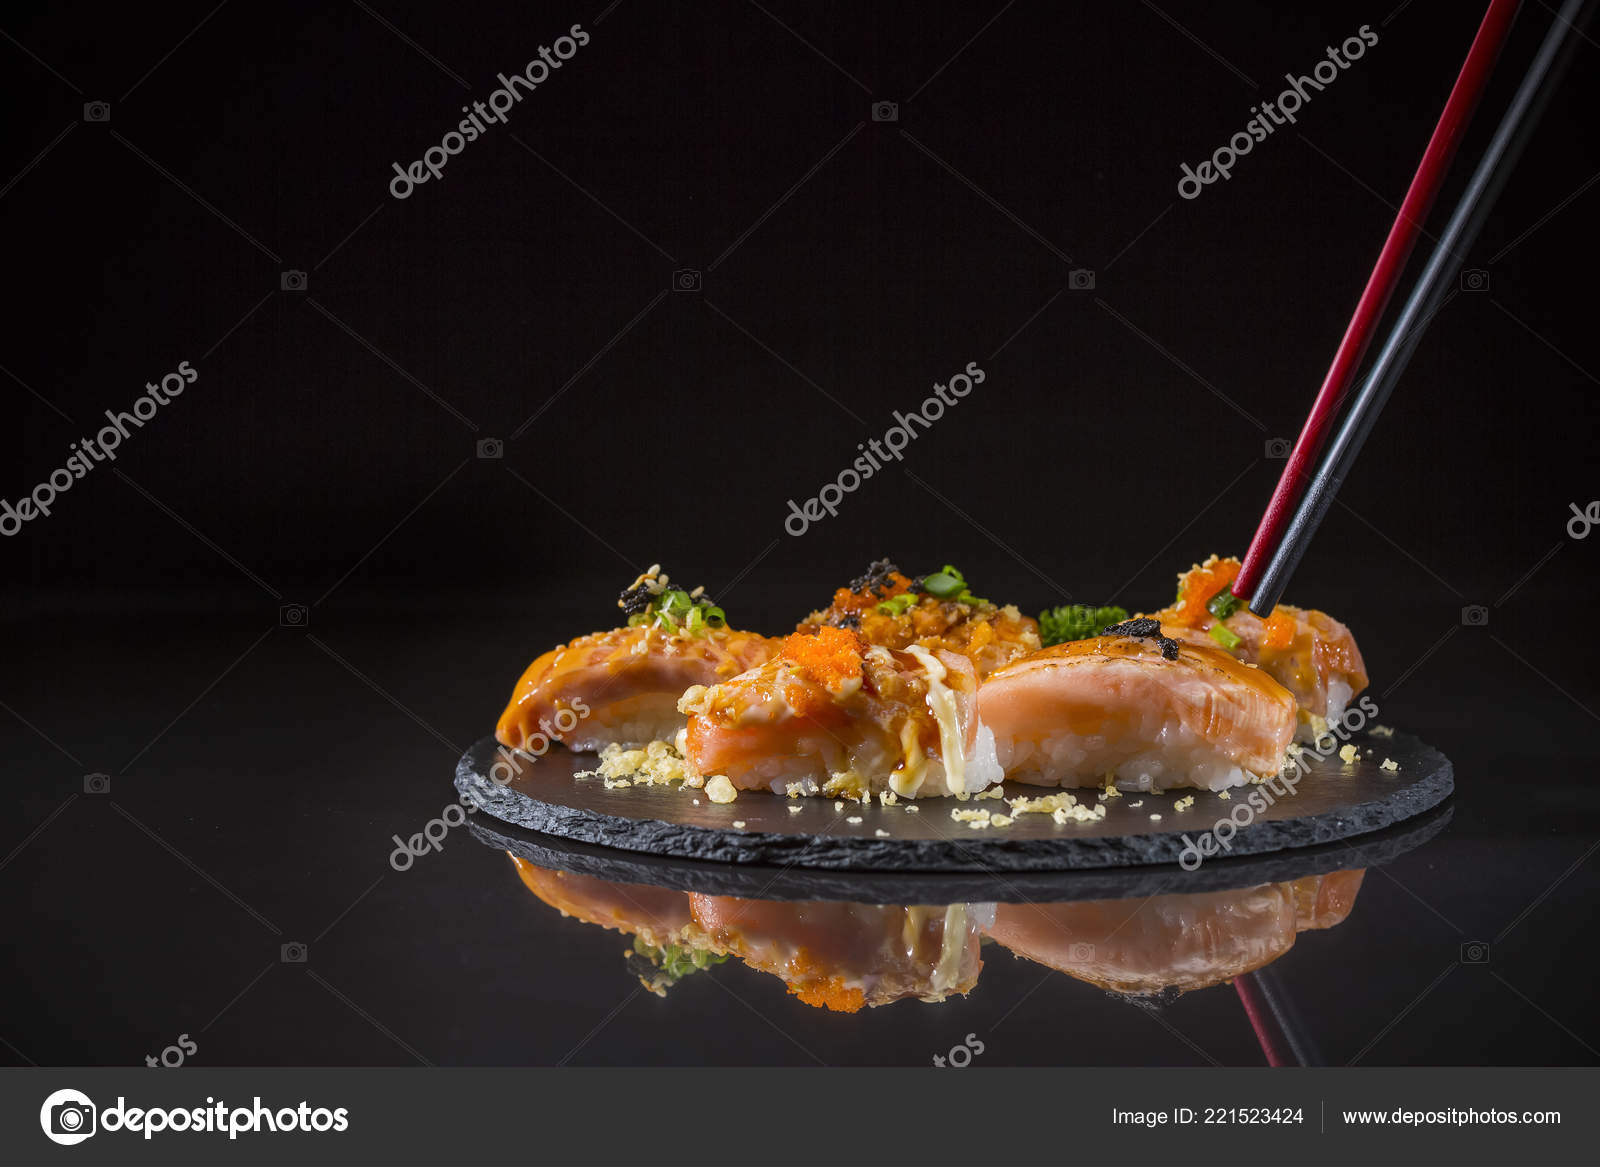 Salmon Nigiri Sushi Salmon Burned Topped Shrimp Eggs Tempura Served Stock Photo Image By C Appleeyesstudio 221523424